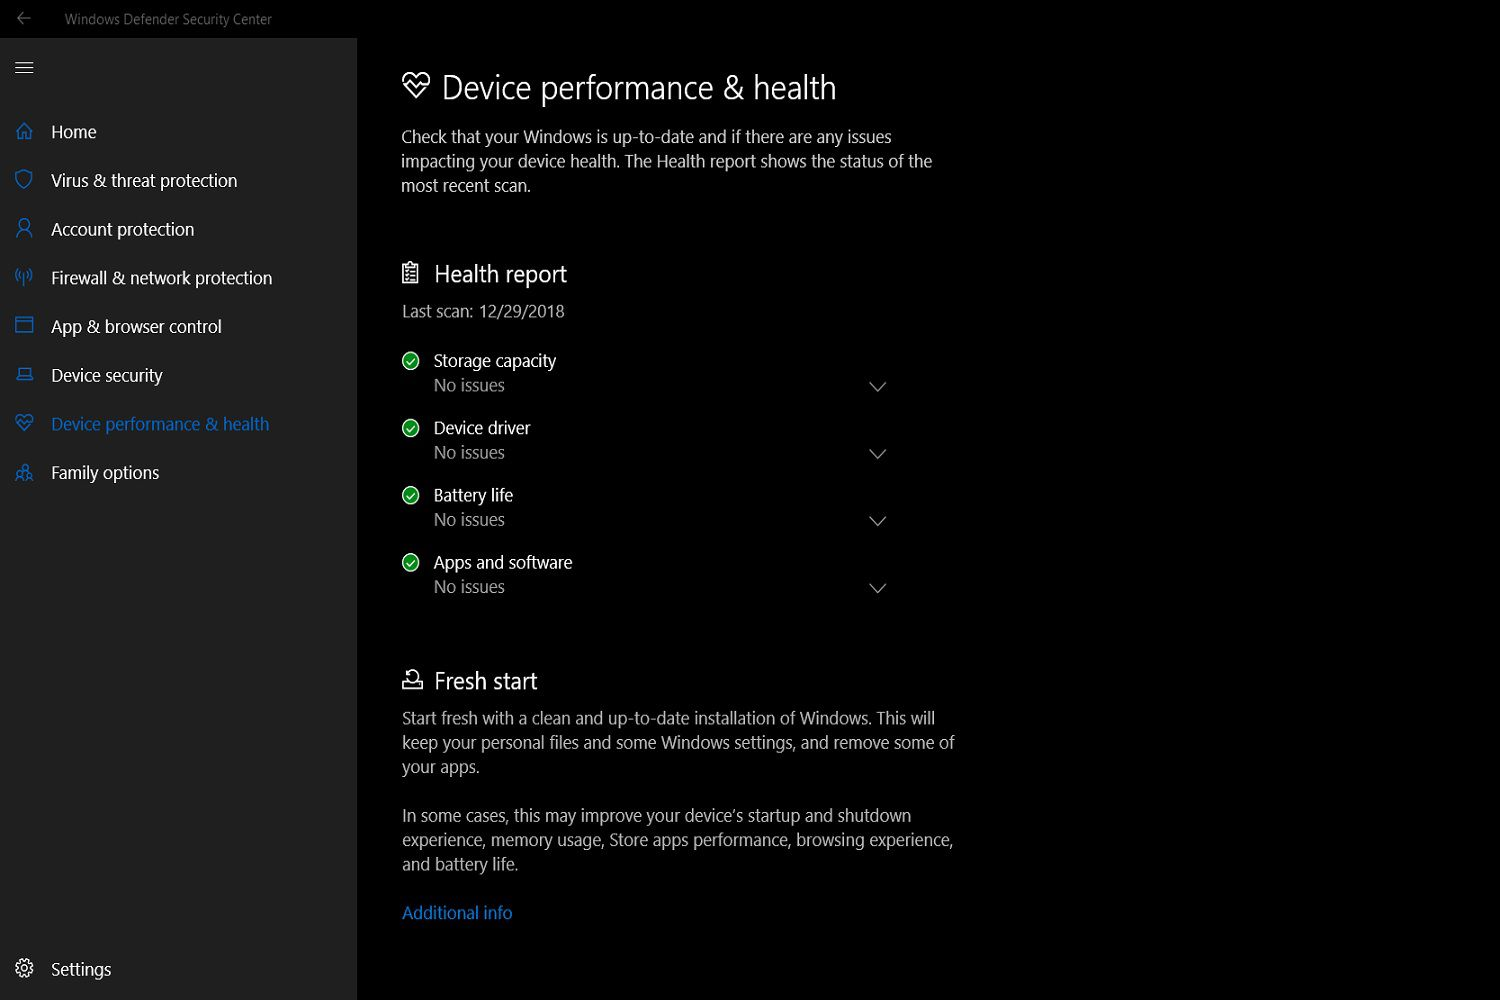 A screenshot of the Windows Defender Security Center's Health report feature.